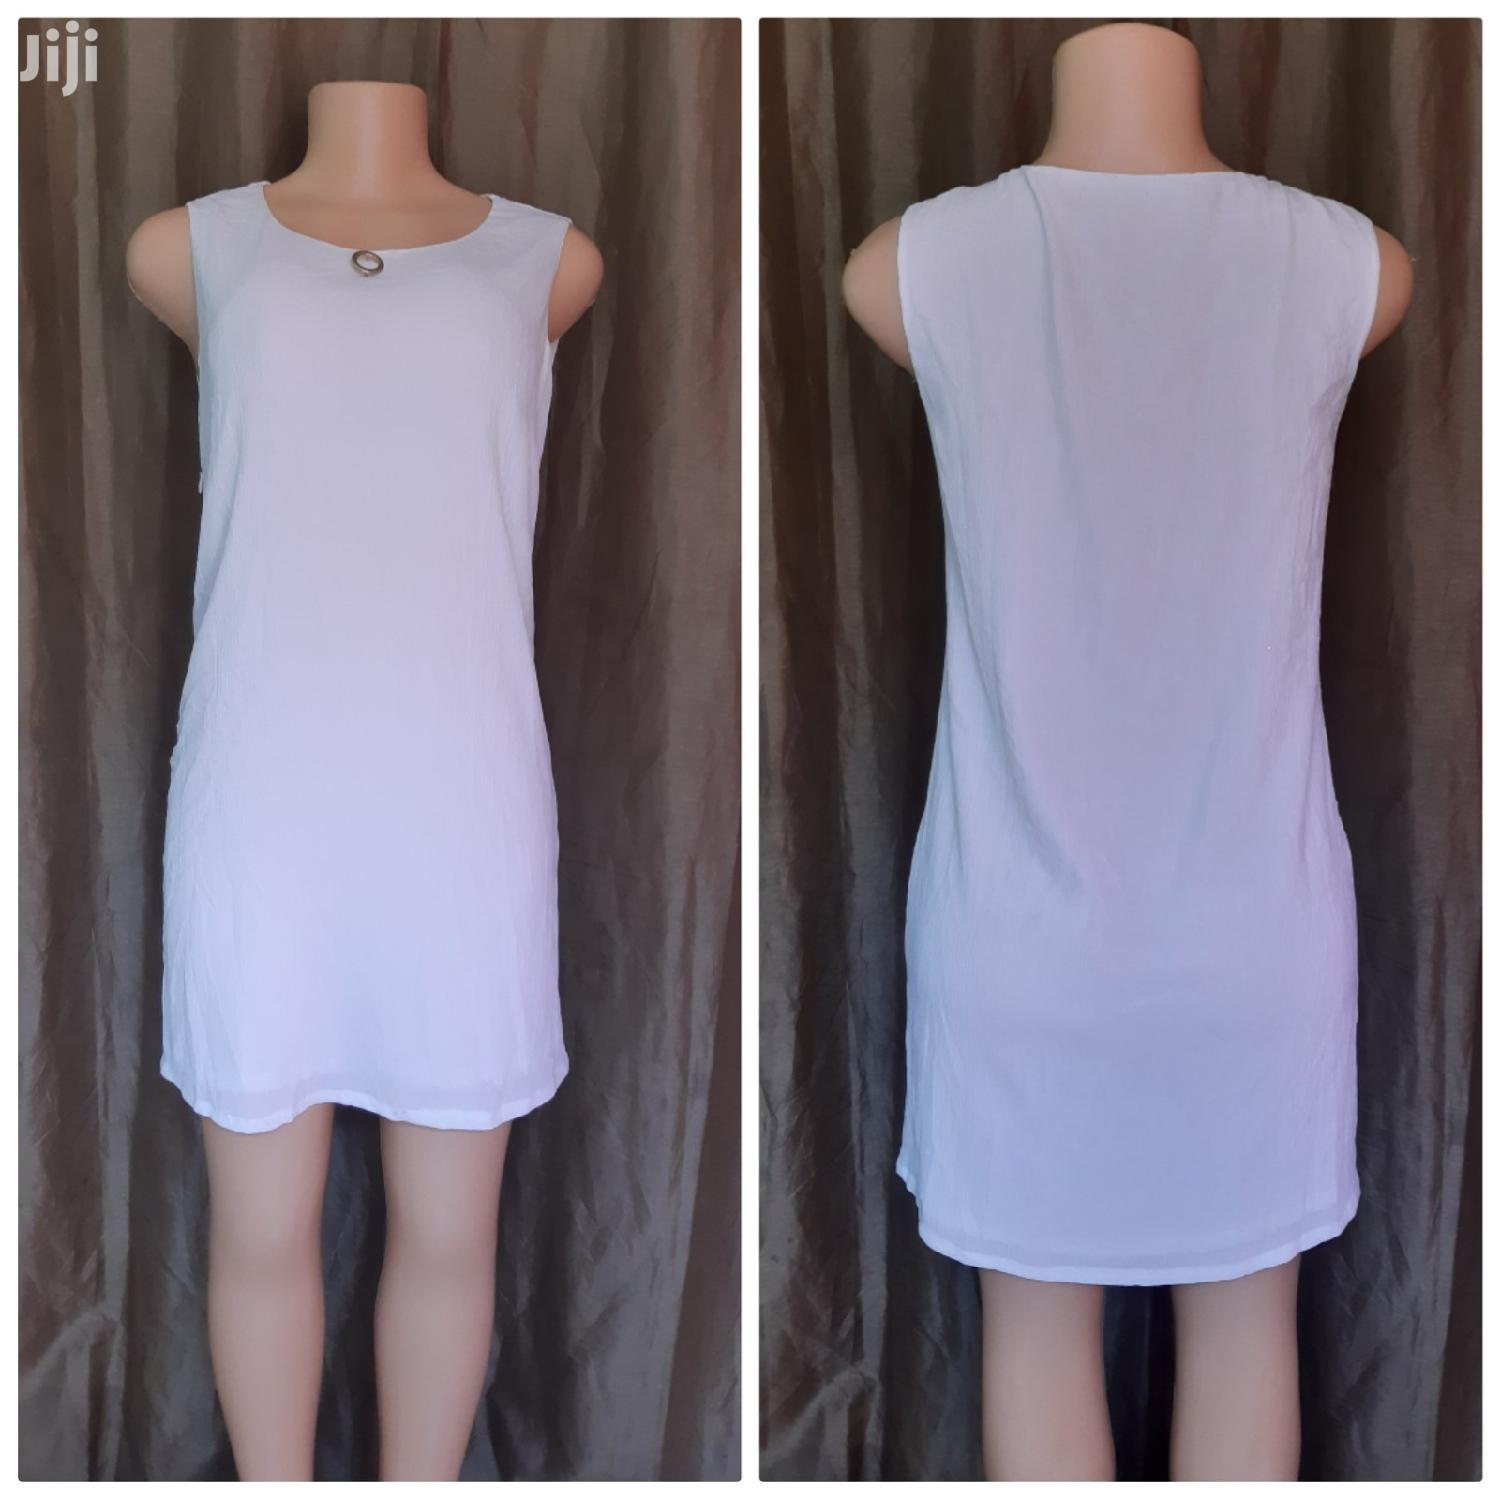 Archive: Dresses Available